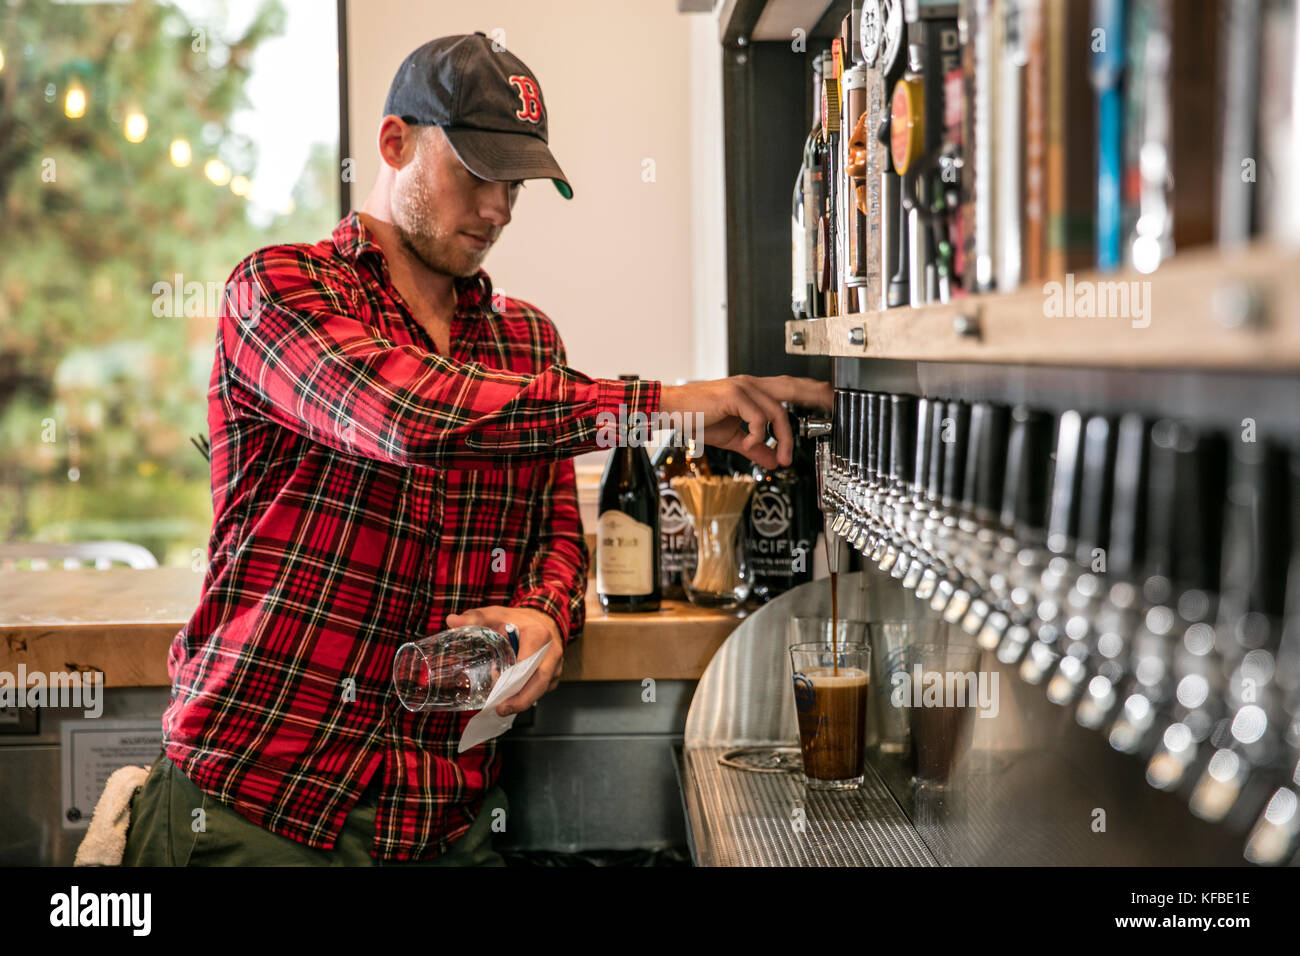 USA, Oregon, Bend, Pacific Pizza and Brew, bartender pouring pint - Stock Image